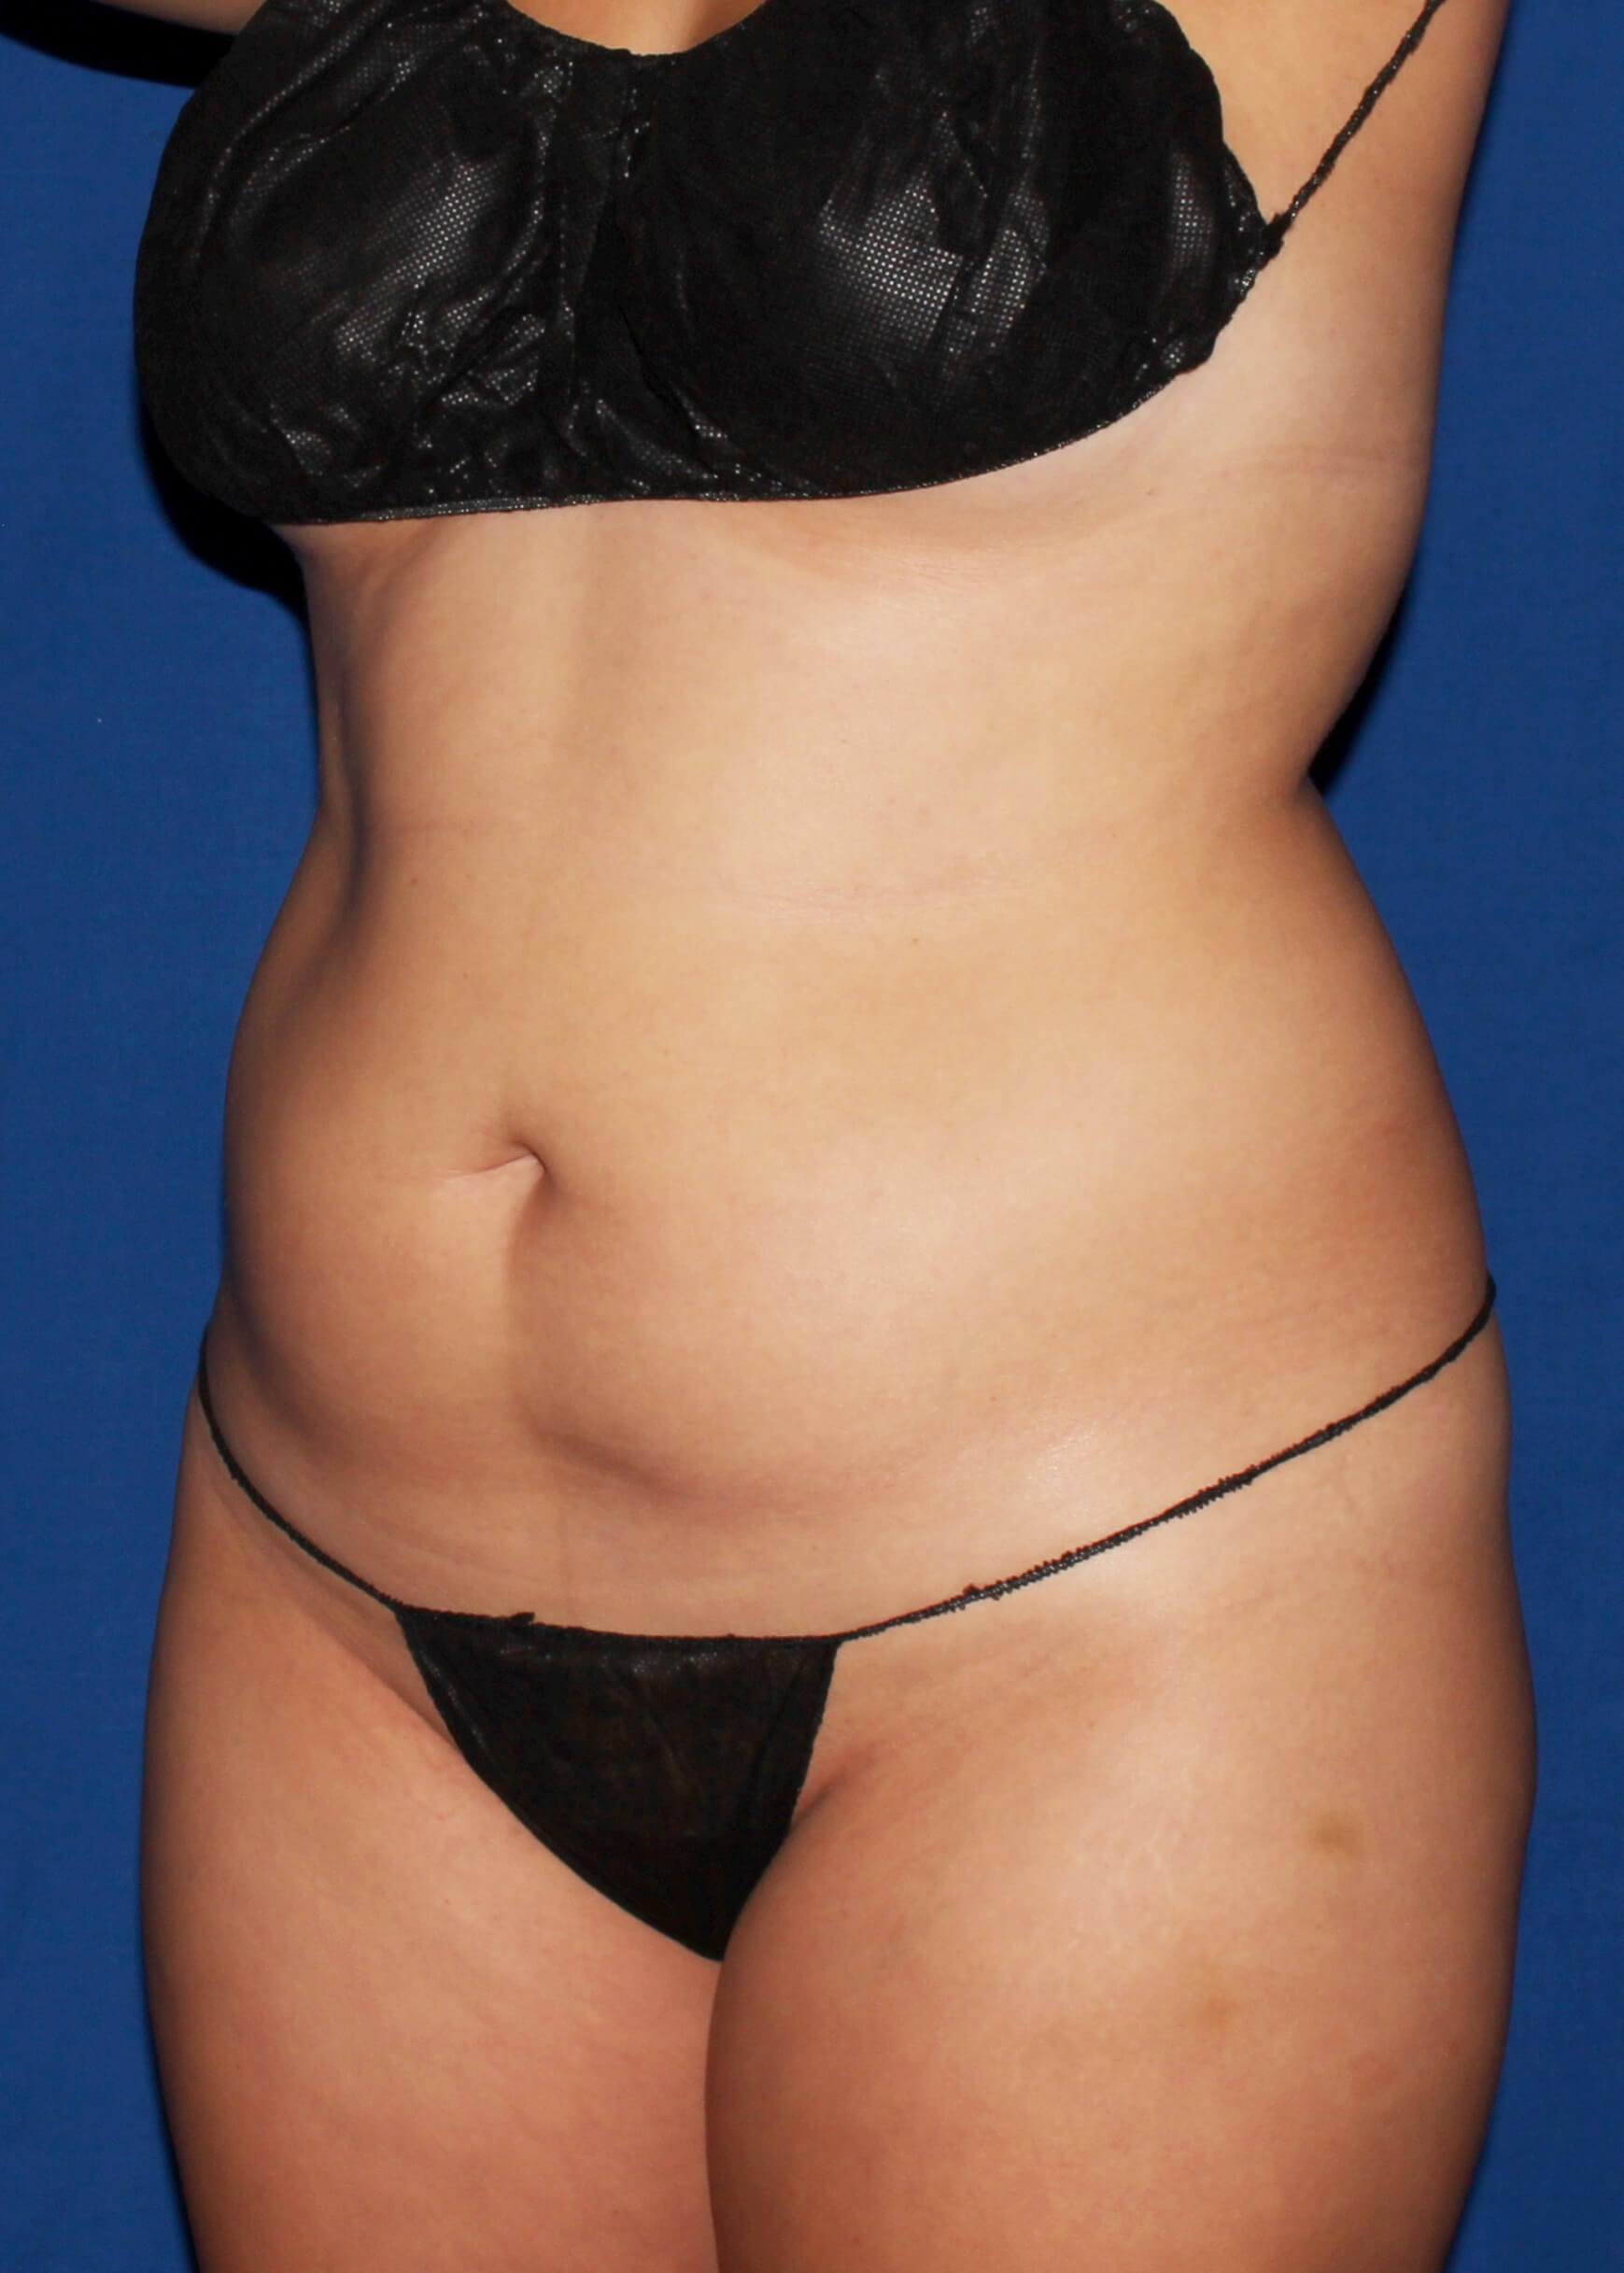 Full Torso Liposuction Before - LEFT FRONT SIDE VIEW